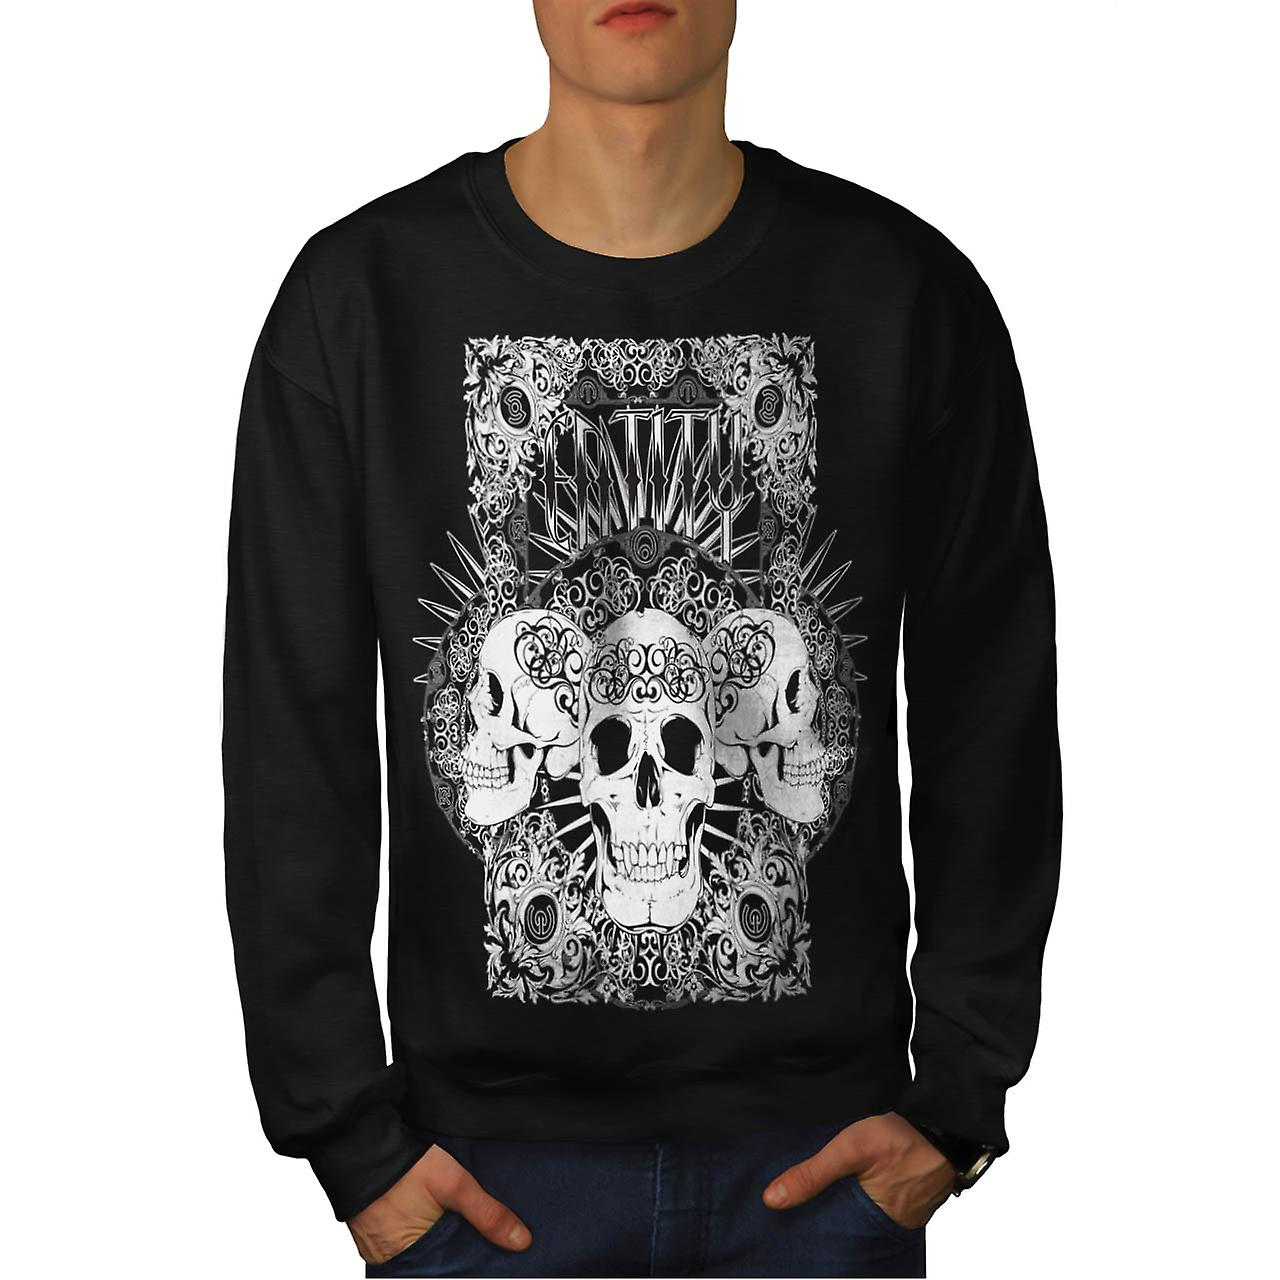 Entity Monster Skull Grave Yard Men Black Sweatshirt | Wellcoda